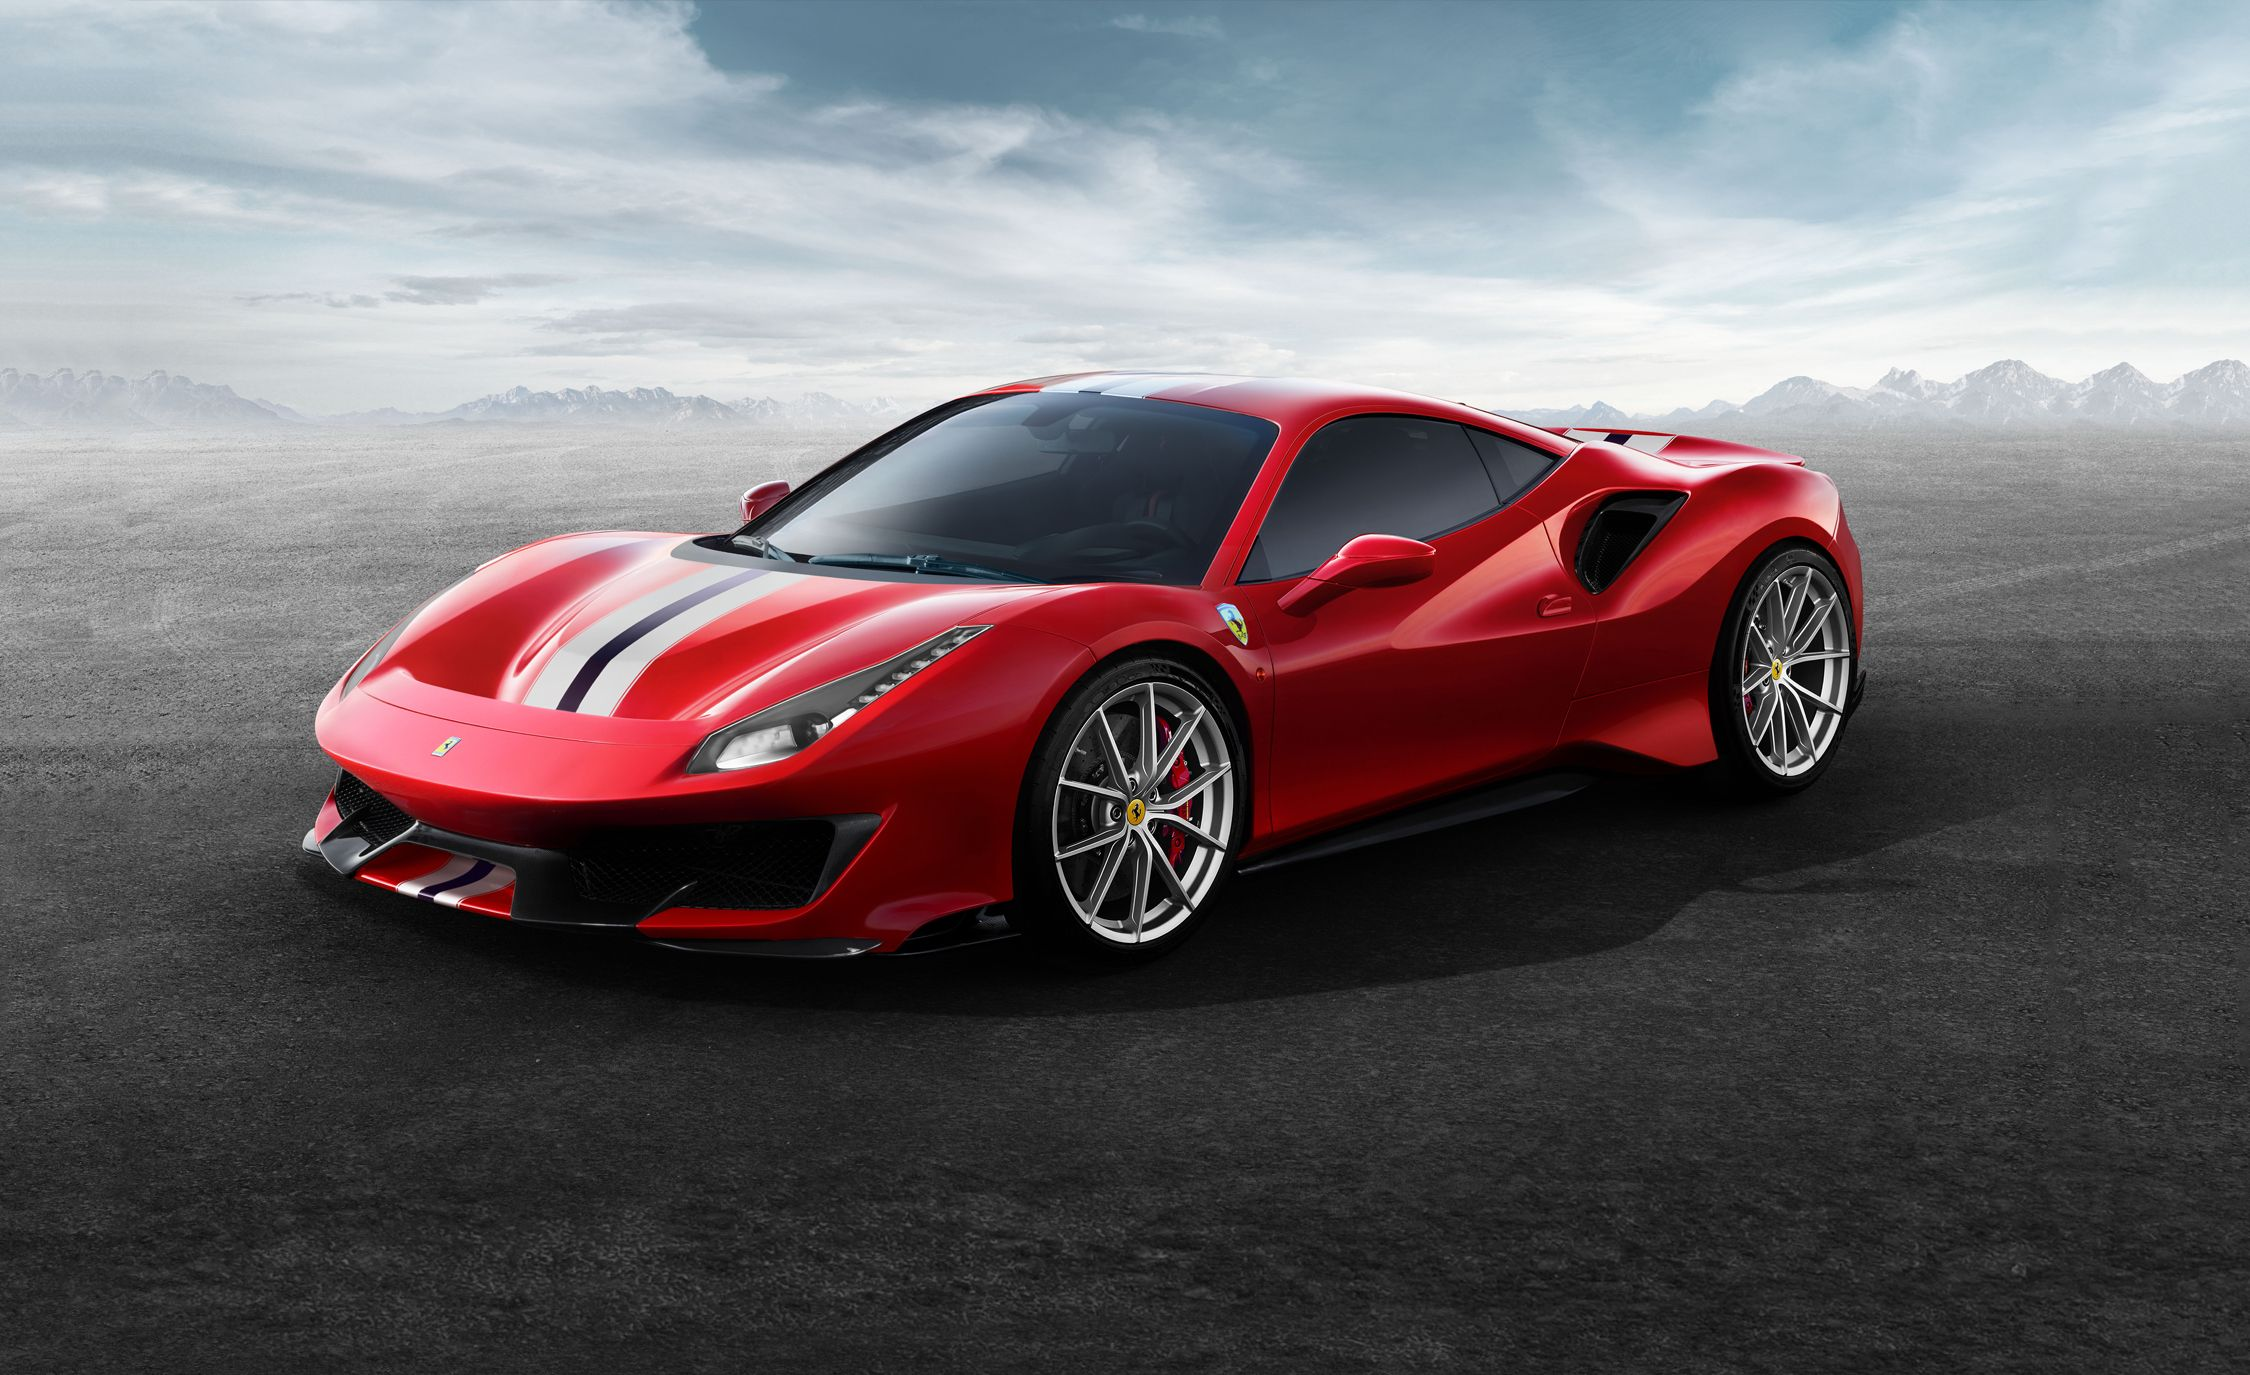 2019 Ferrari 488 Pista The 710 Hp Track Warrior Revealed